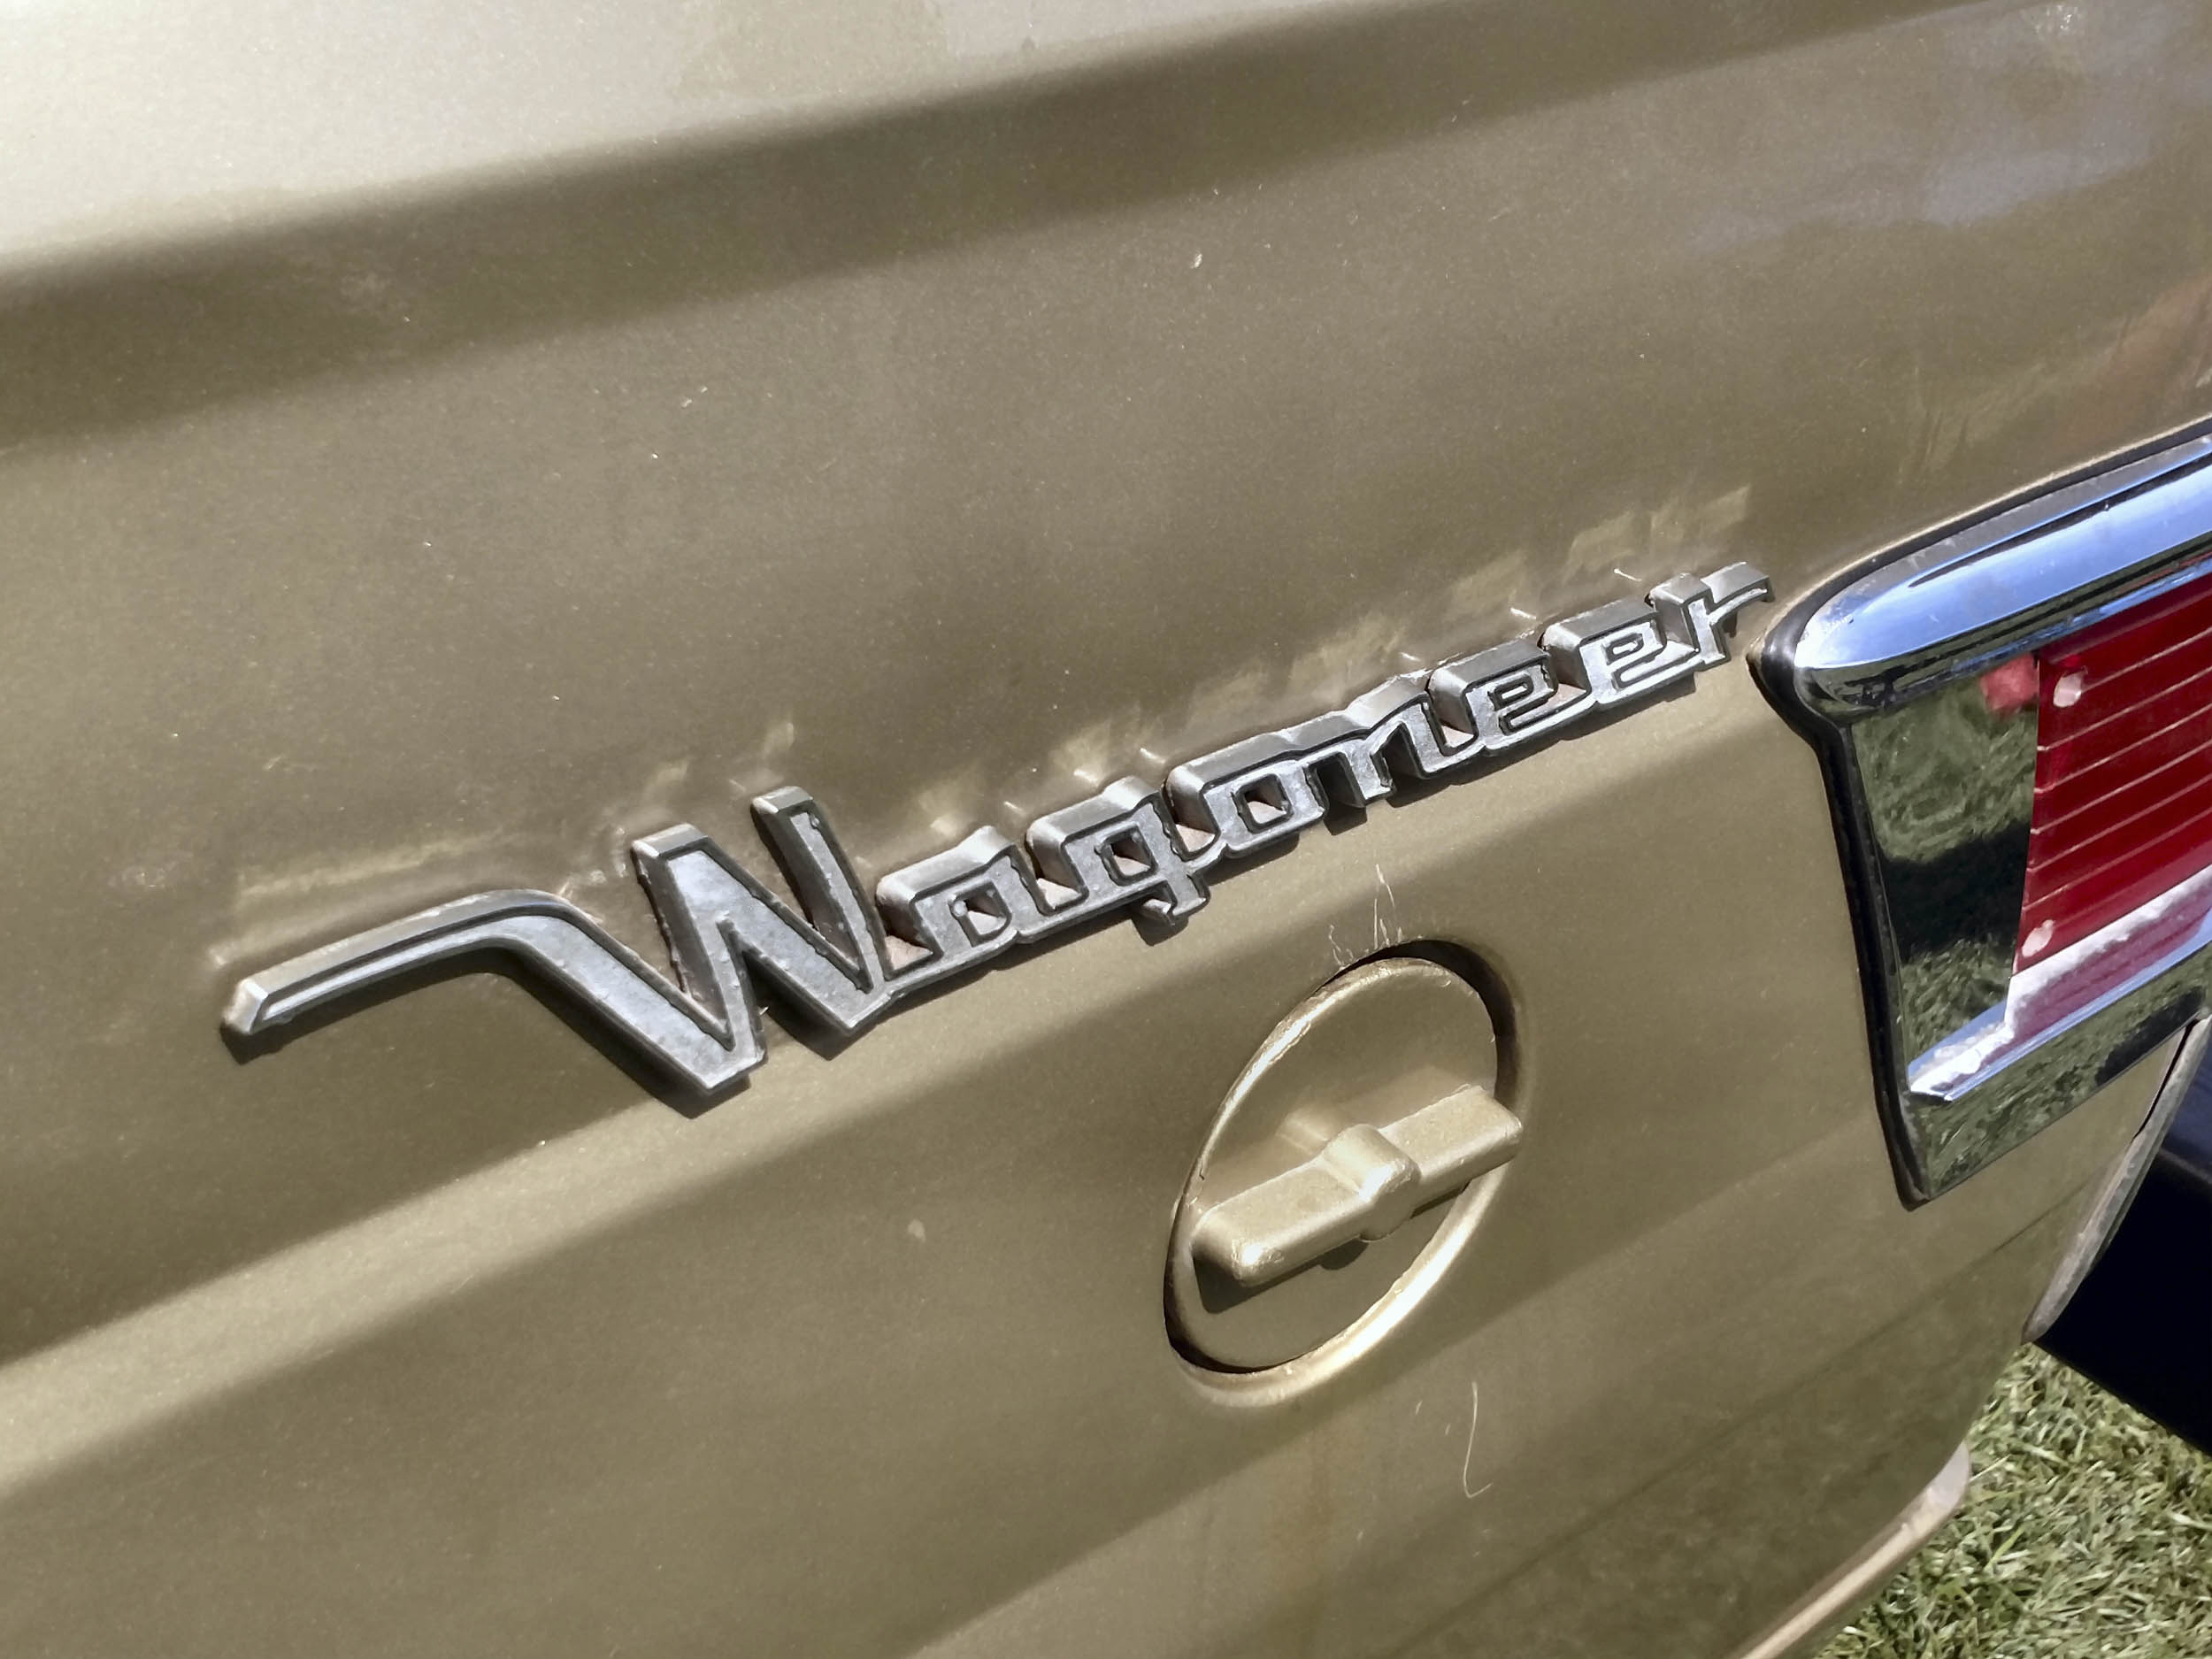 1968 Jeep 'Wrangler' badge